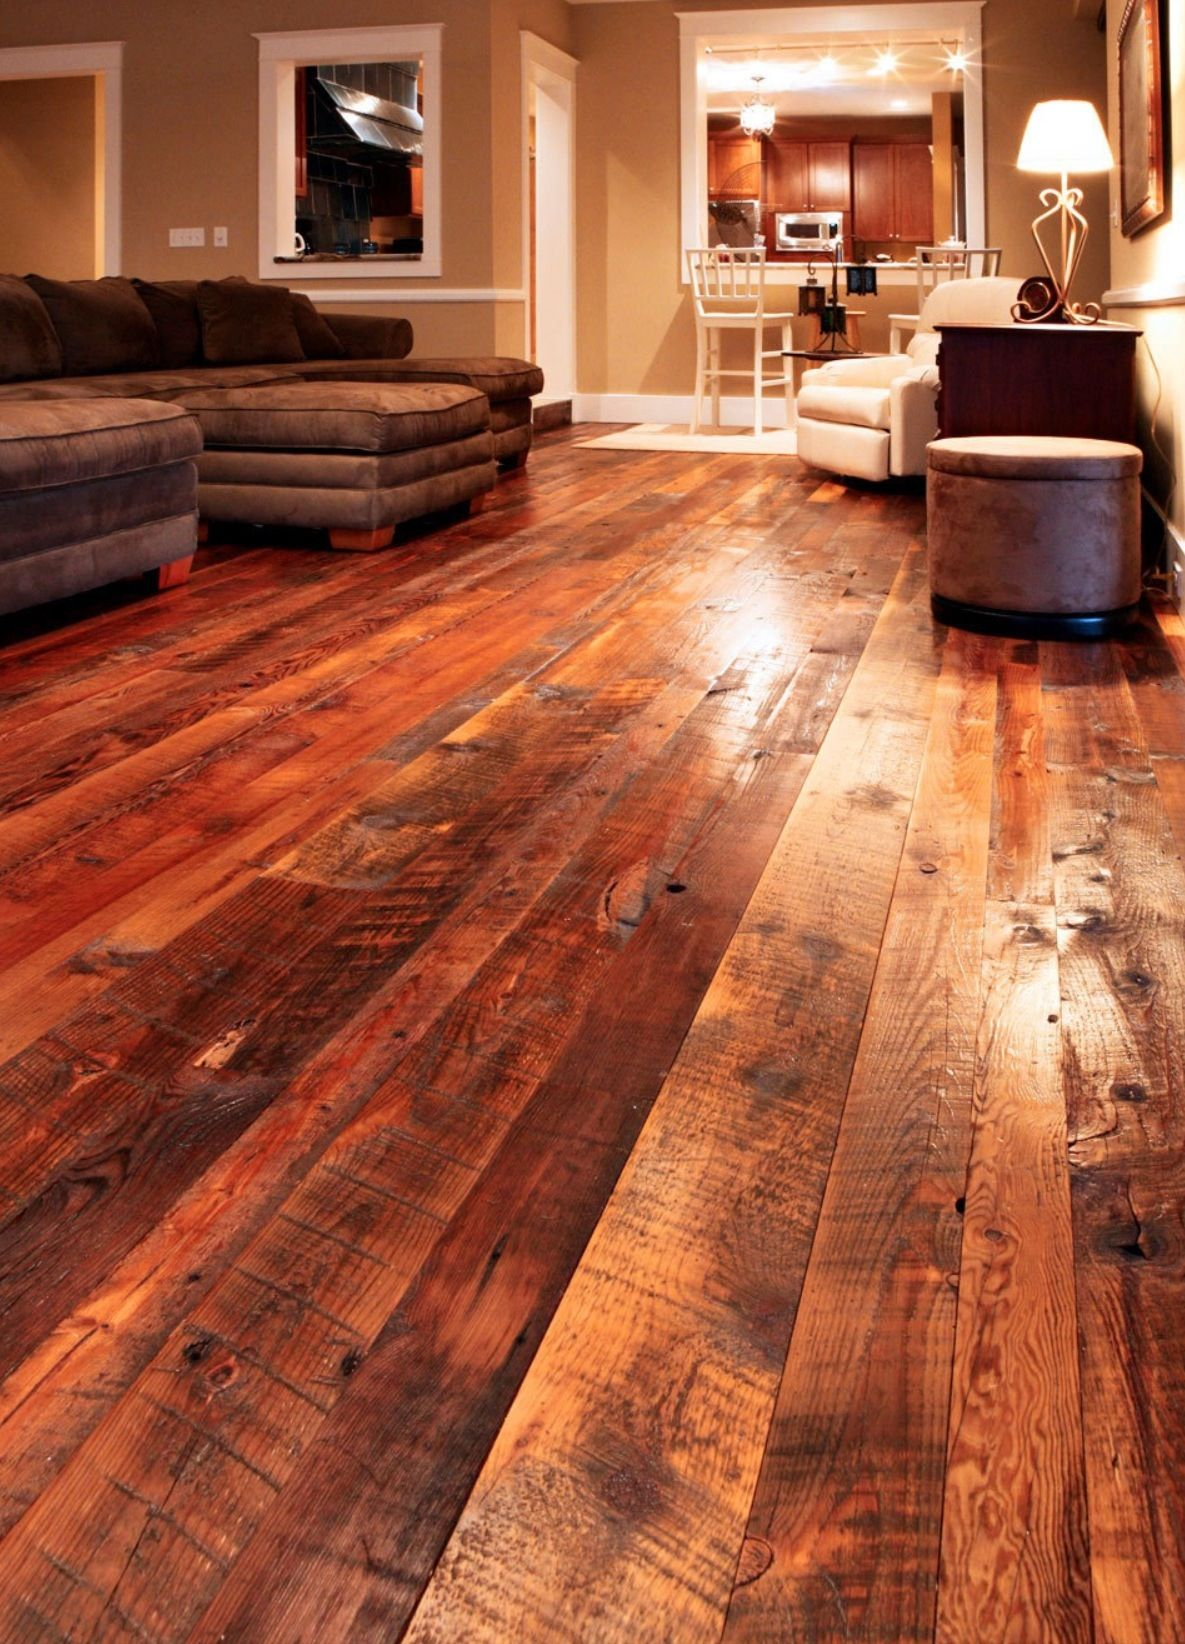 Barn wood flooring love this if i do decide to build this is a must